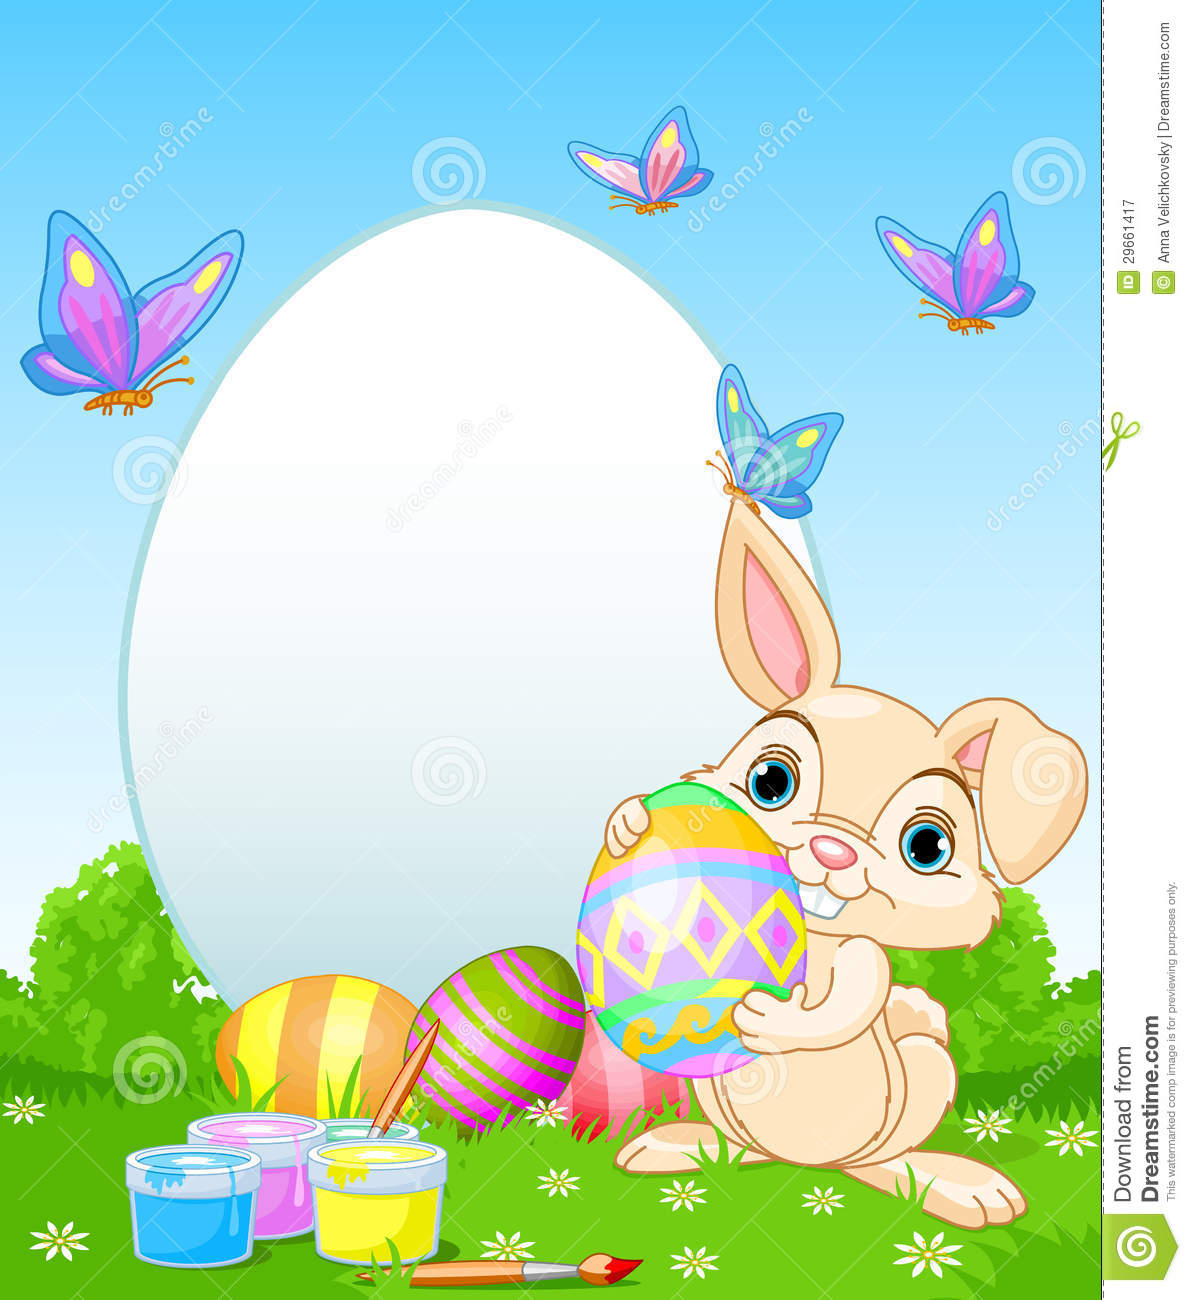 Easter Bunny Painting Easter Eggs Royalty Free Stock